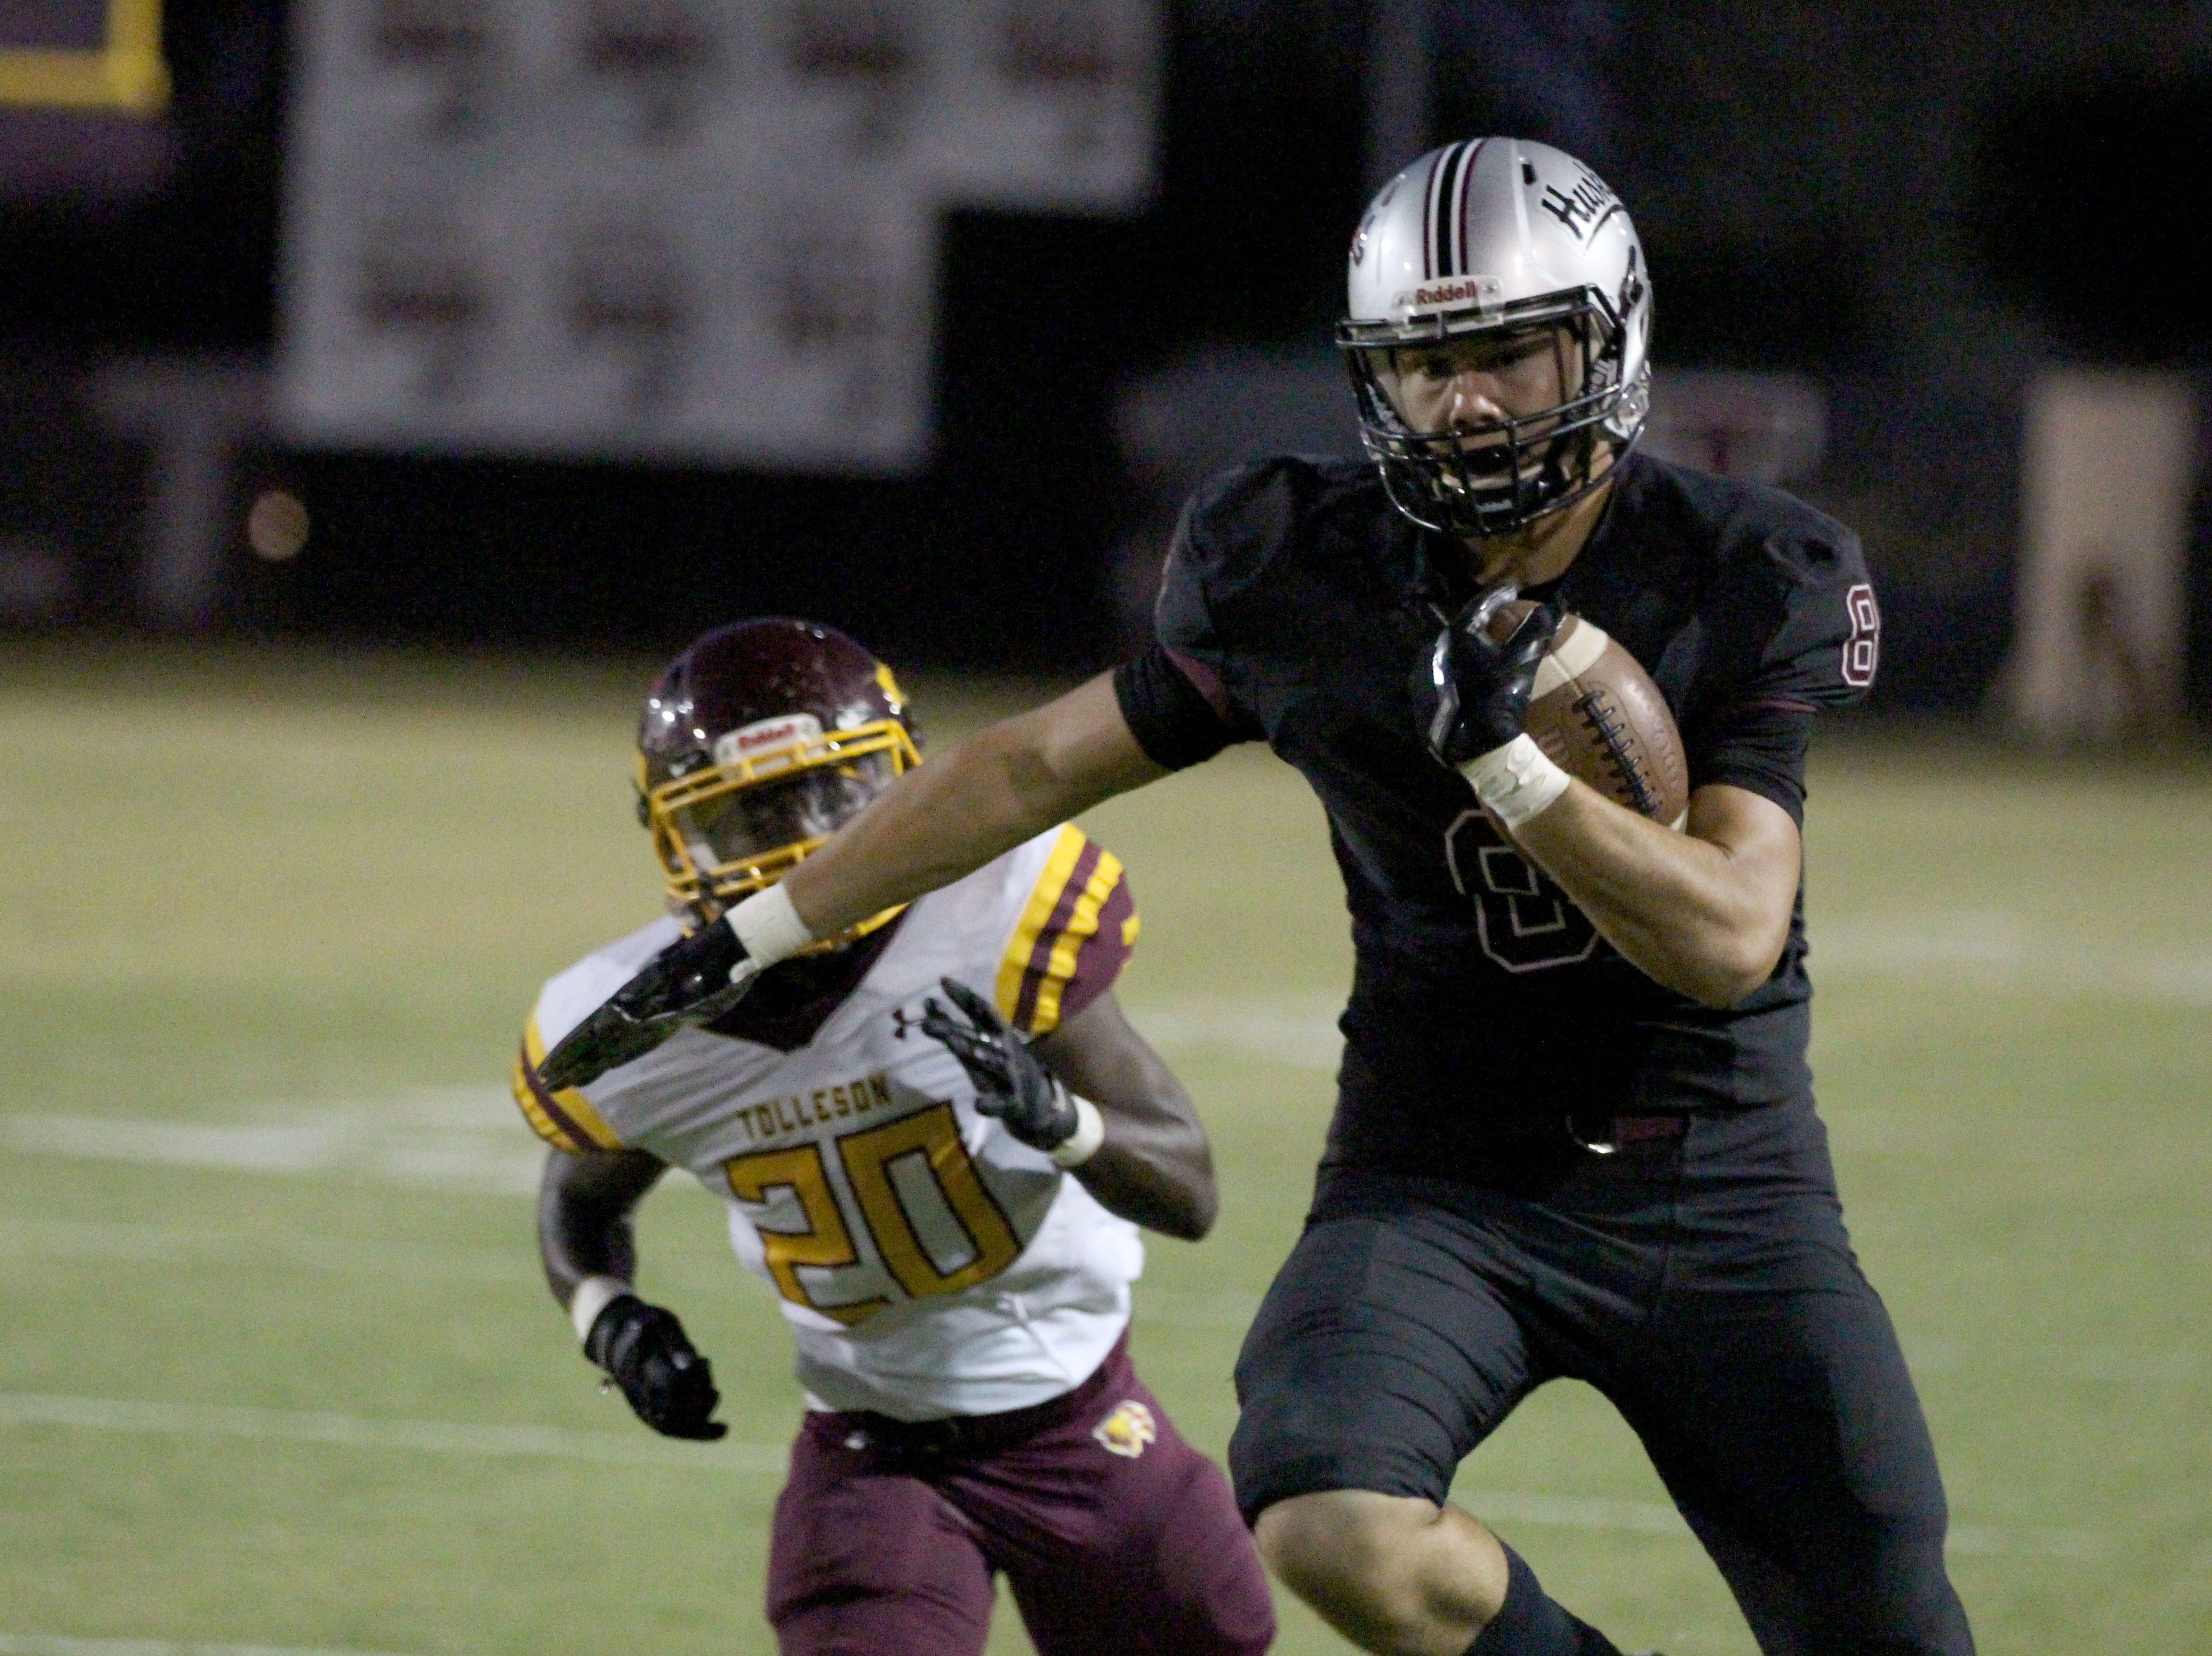 Hamilton's Brandon Schenks (8) runs up the field against Tolleson on Friday night in Chandler, Ariz. Sept. 7, 2018.